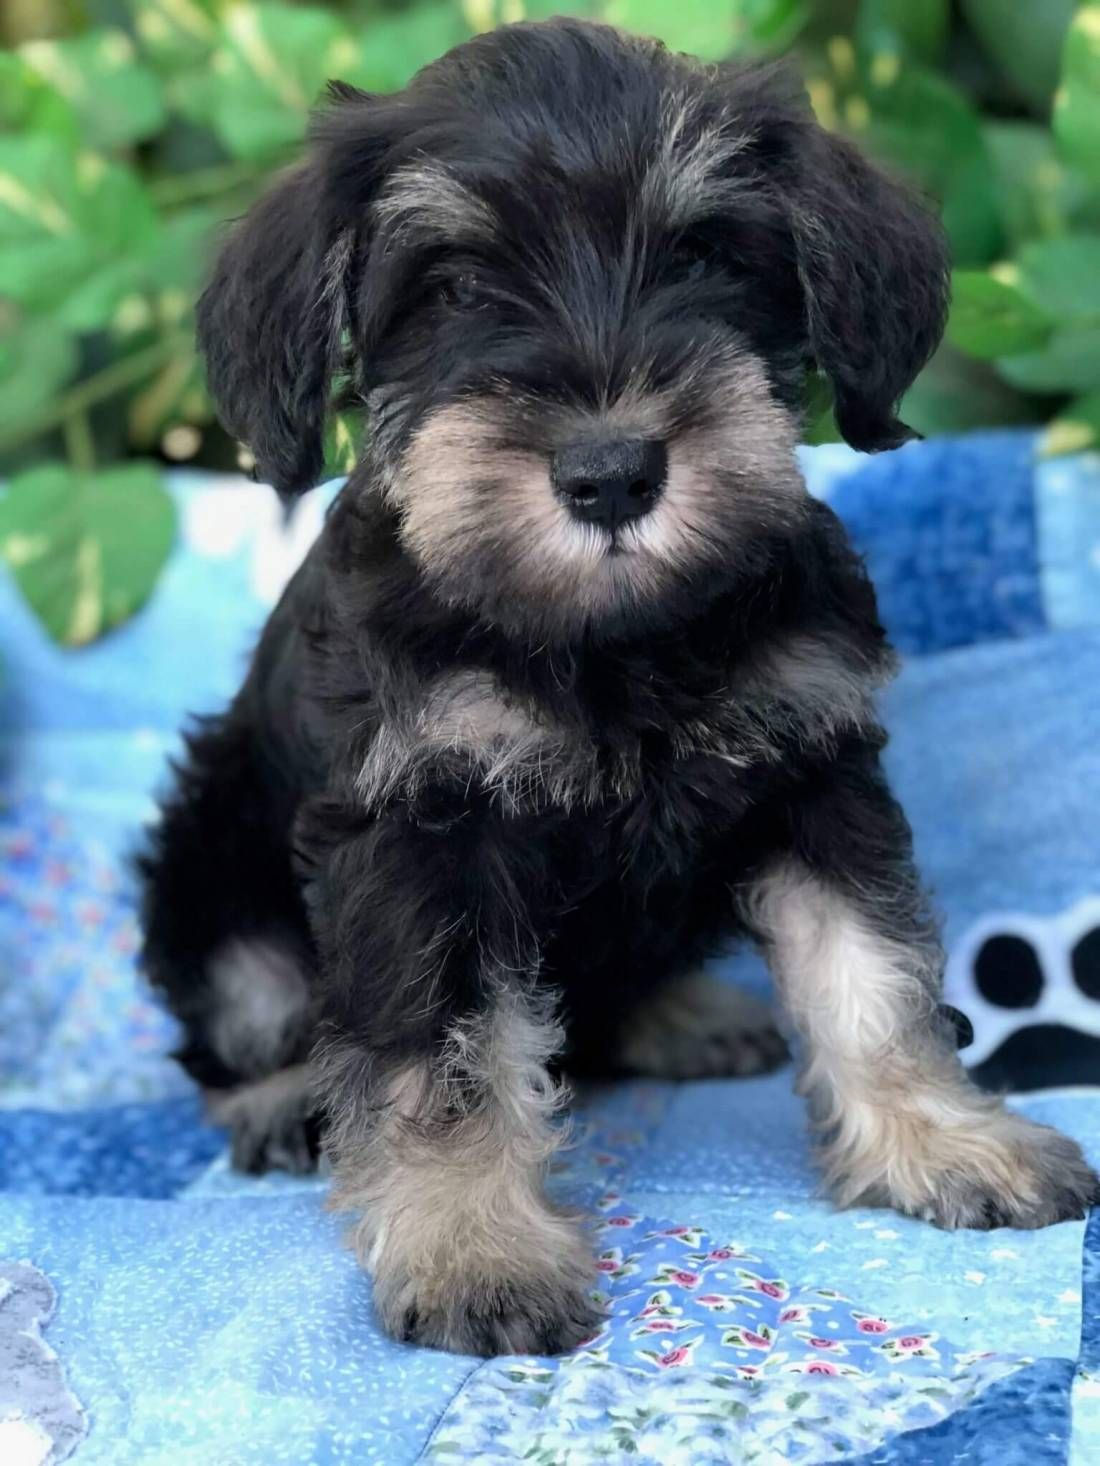 Pin by Pam Peters on Animals in 2020 Schnauzer puppy